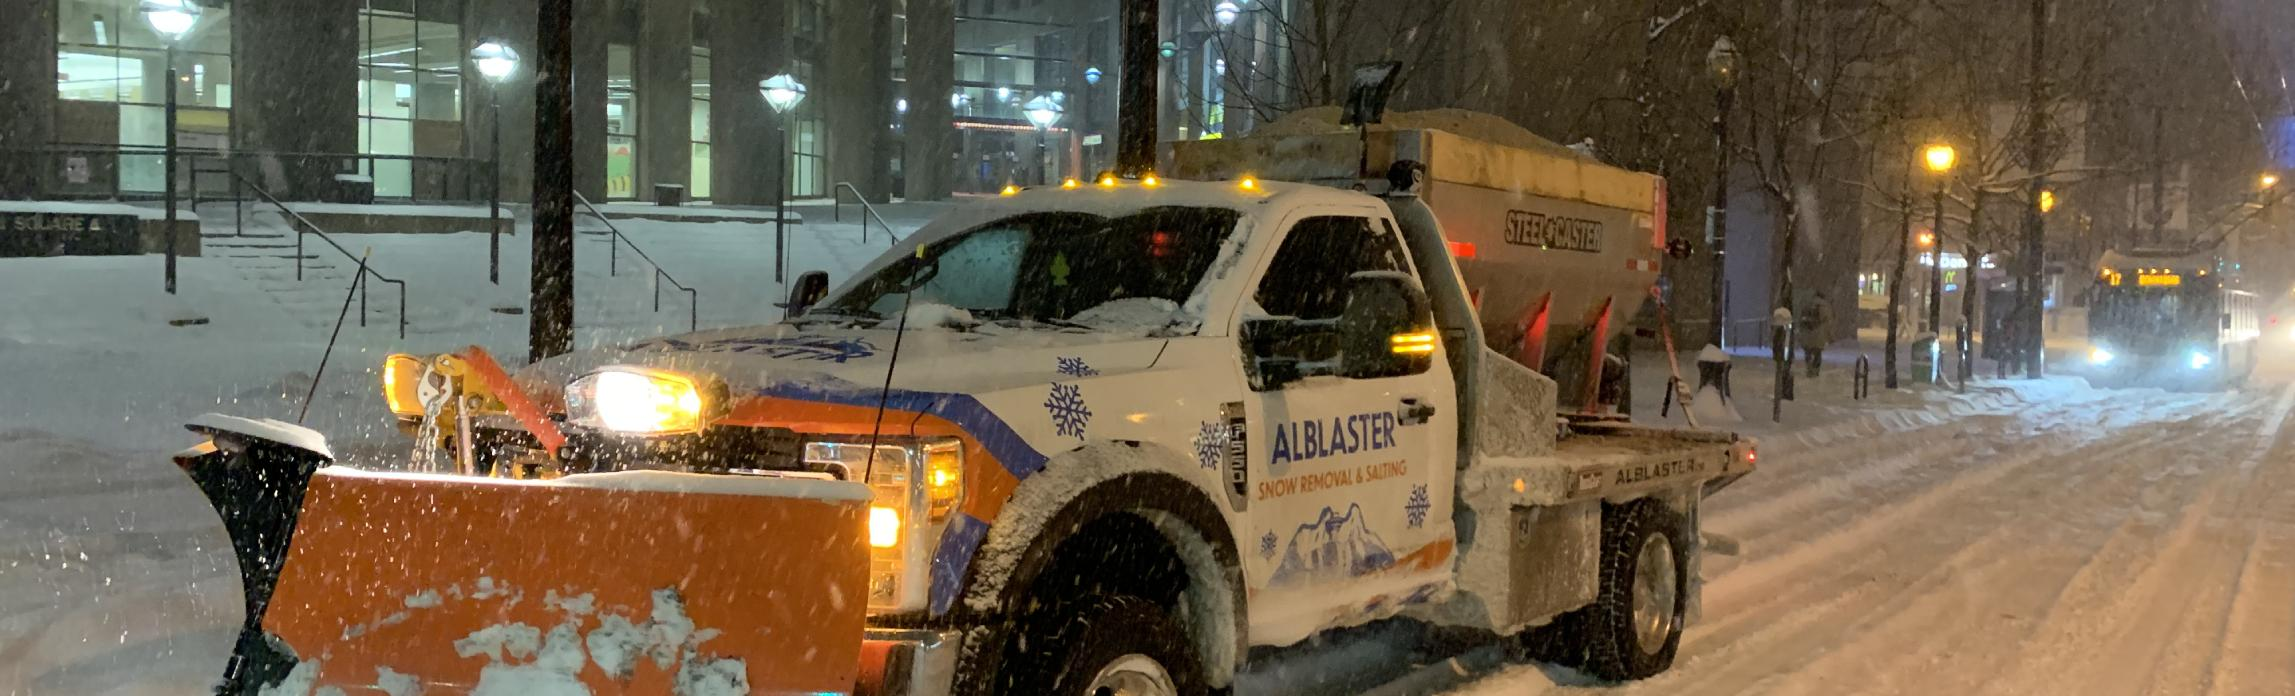 truck-vancouver-snow-removal-main-banner